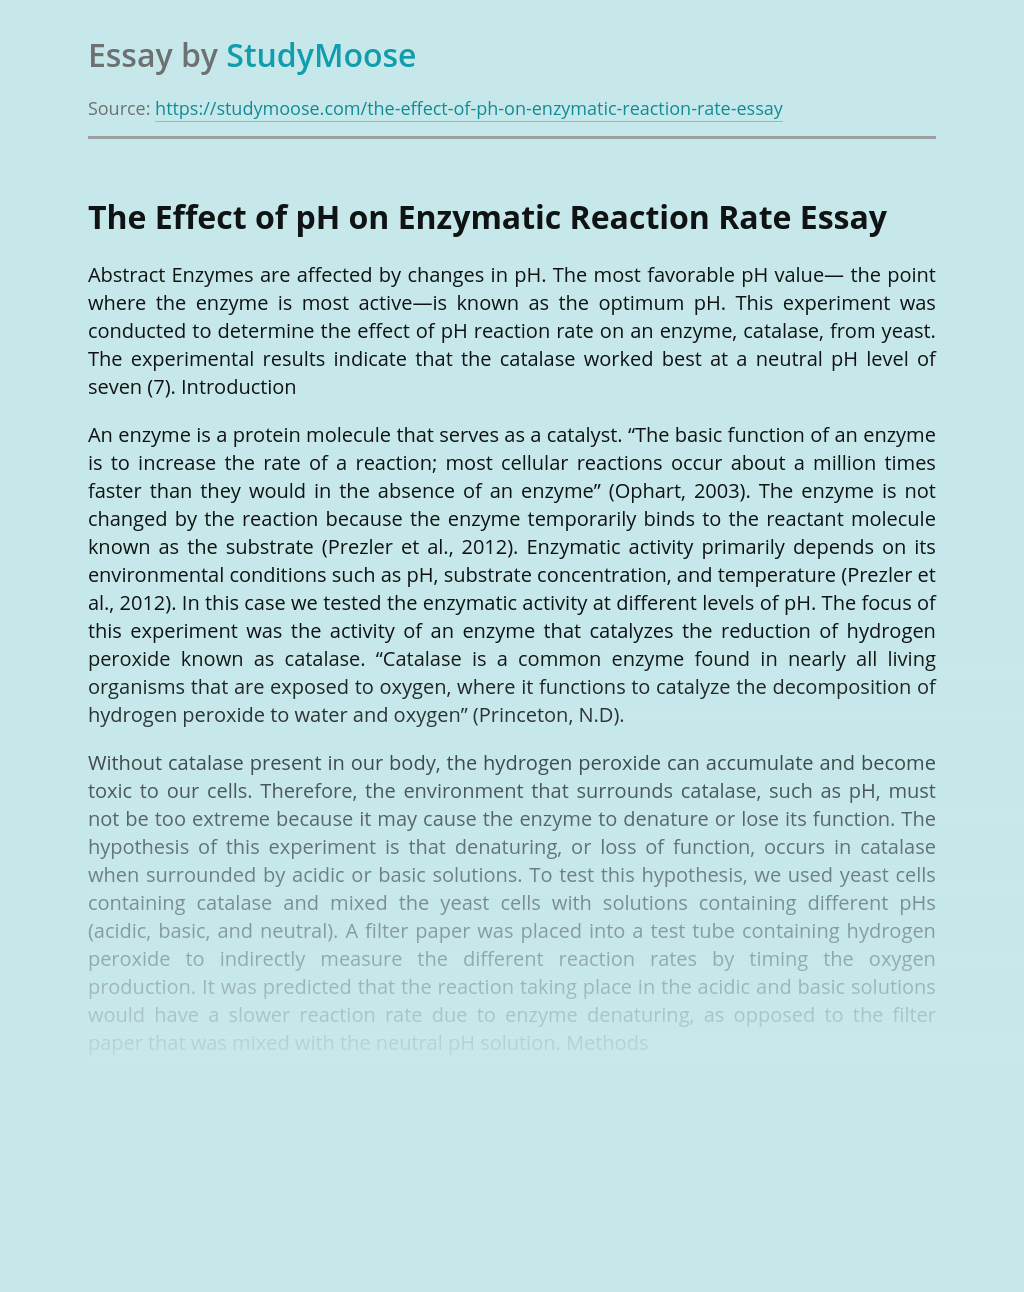 The Effect of pH on Enzymatic Reaction Rate